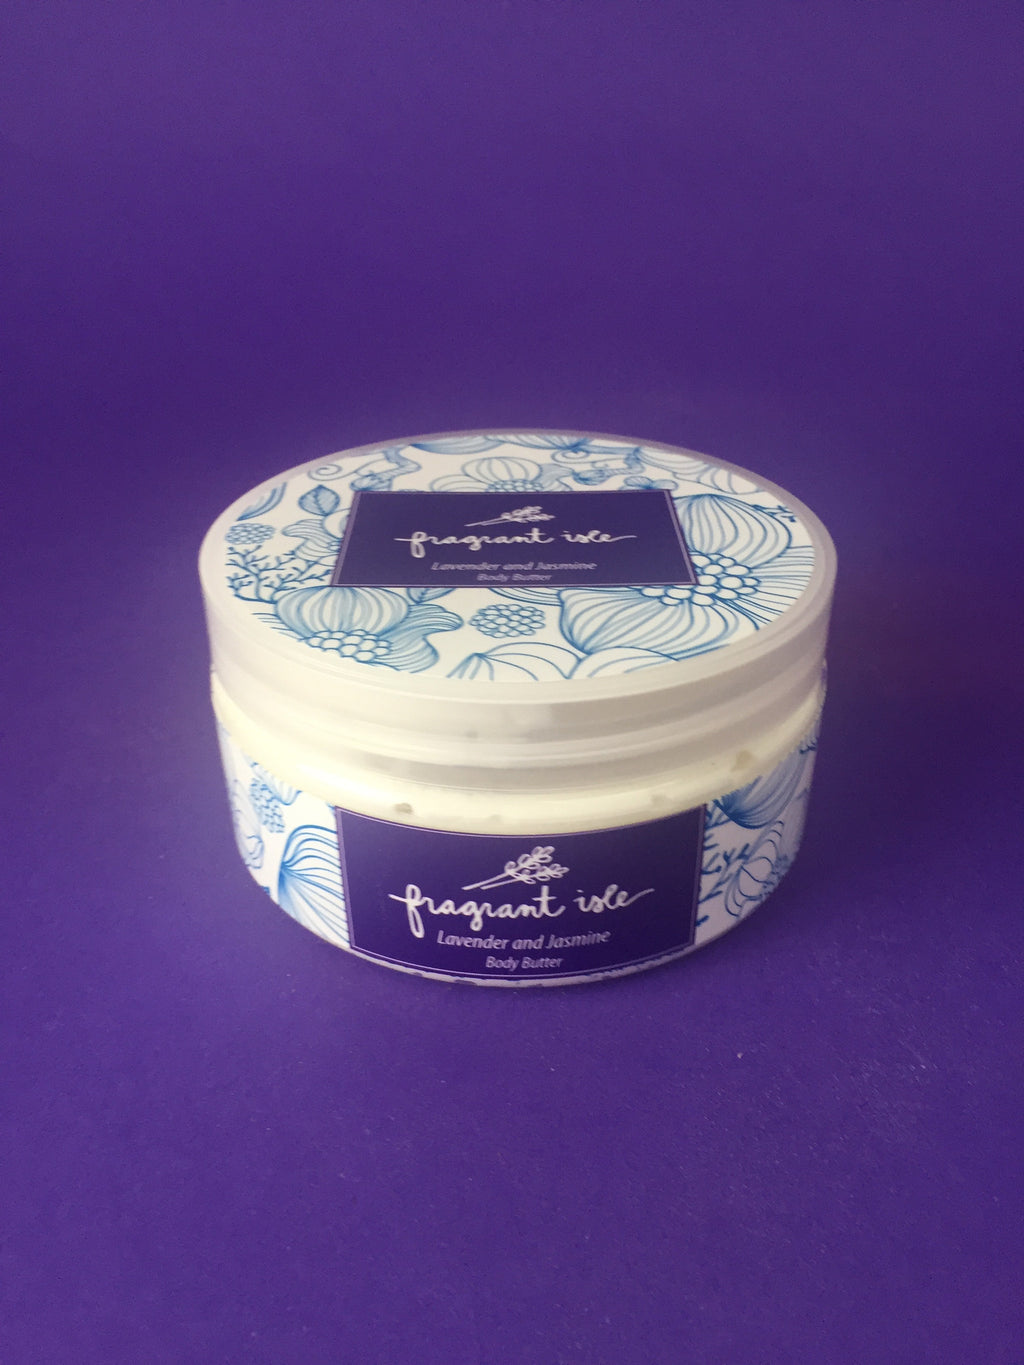 Lavender Jasmine Body Butter - 8 oz